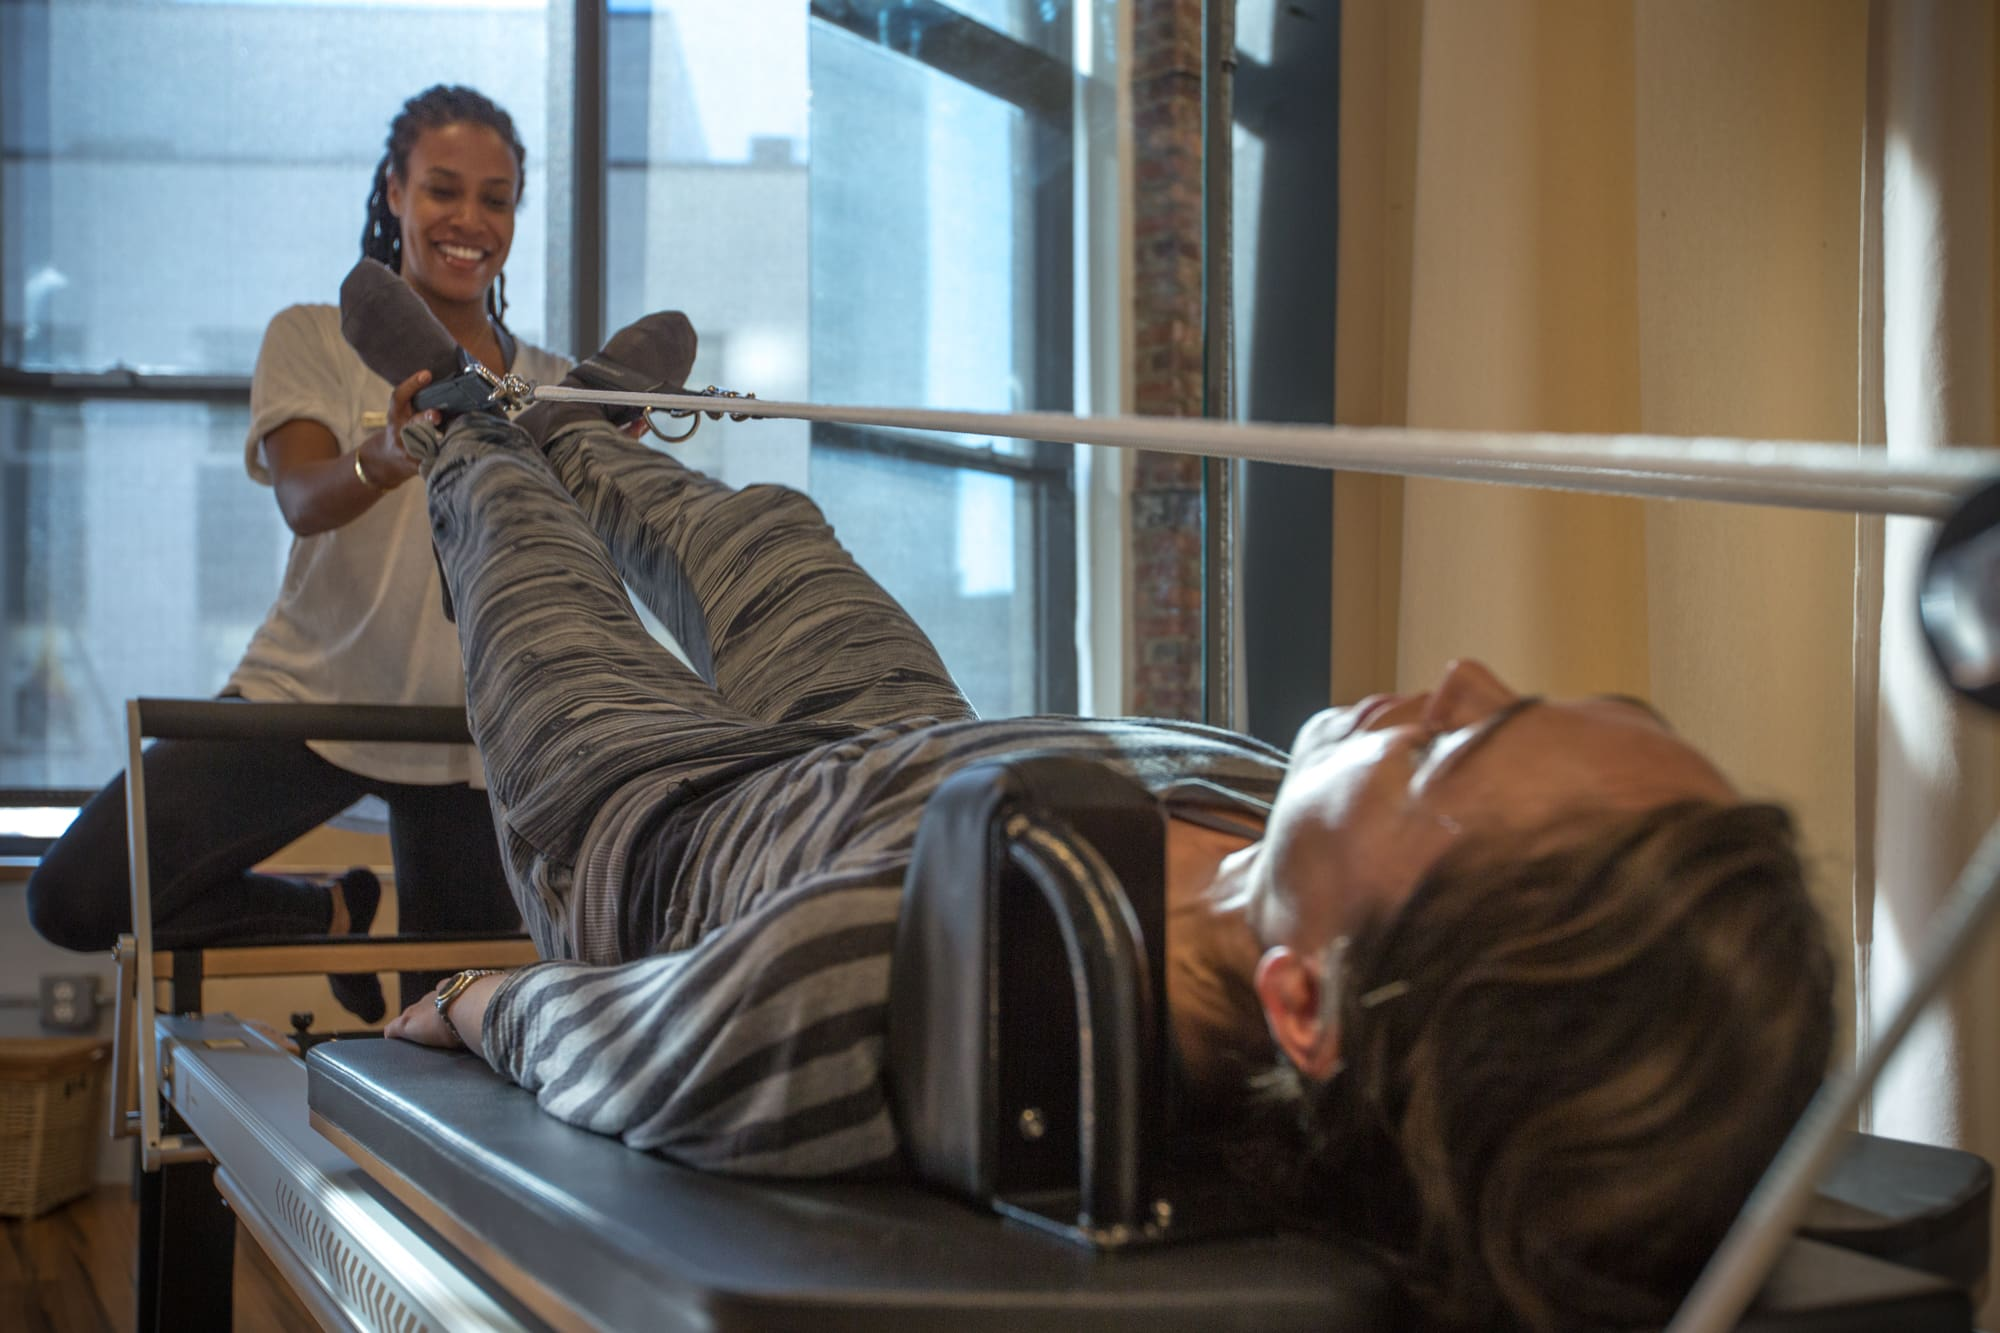 Physical Therapist Using Pilates Reformer | Physical Therapist Using Pilates-Based Physical Therapy | https://physiologicnyc.com/physical-therapy/